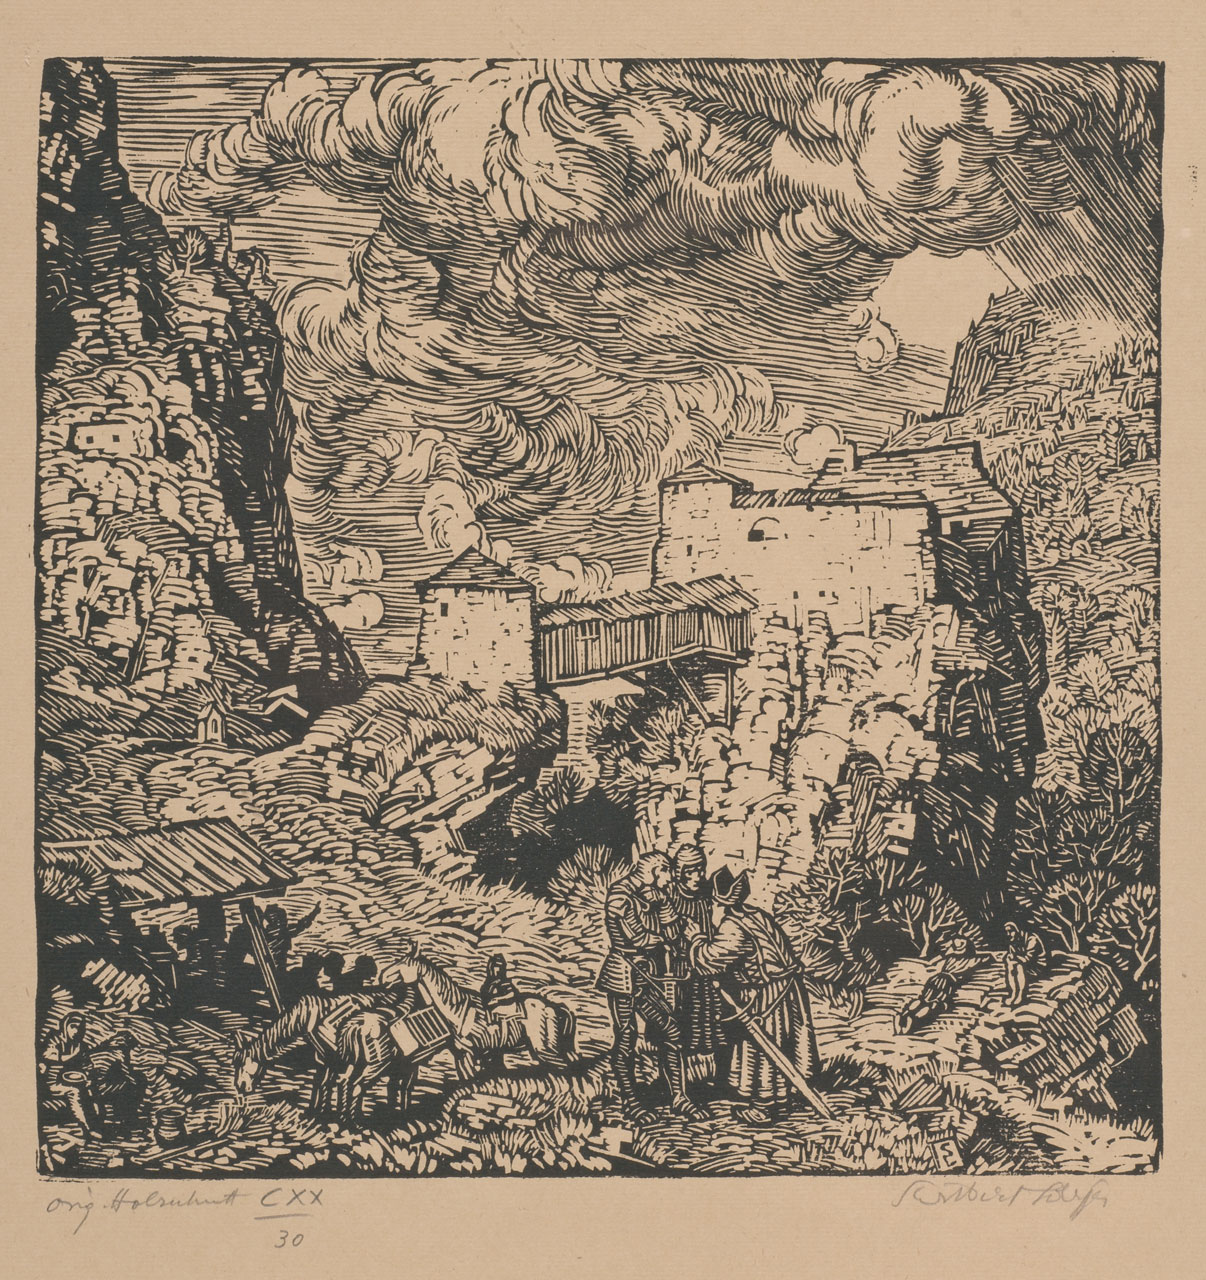 Switbert Lobisser (1878-1943), The small siege, 1930, woodcut, 30.7x22.6cm, signed, titled a. numm. 30 from op.120